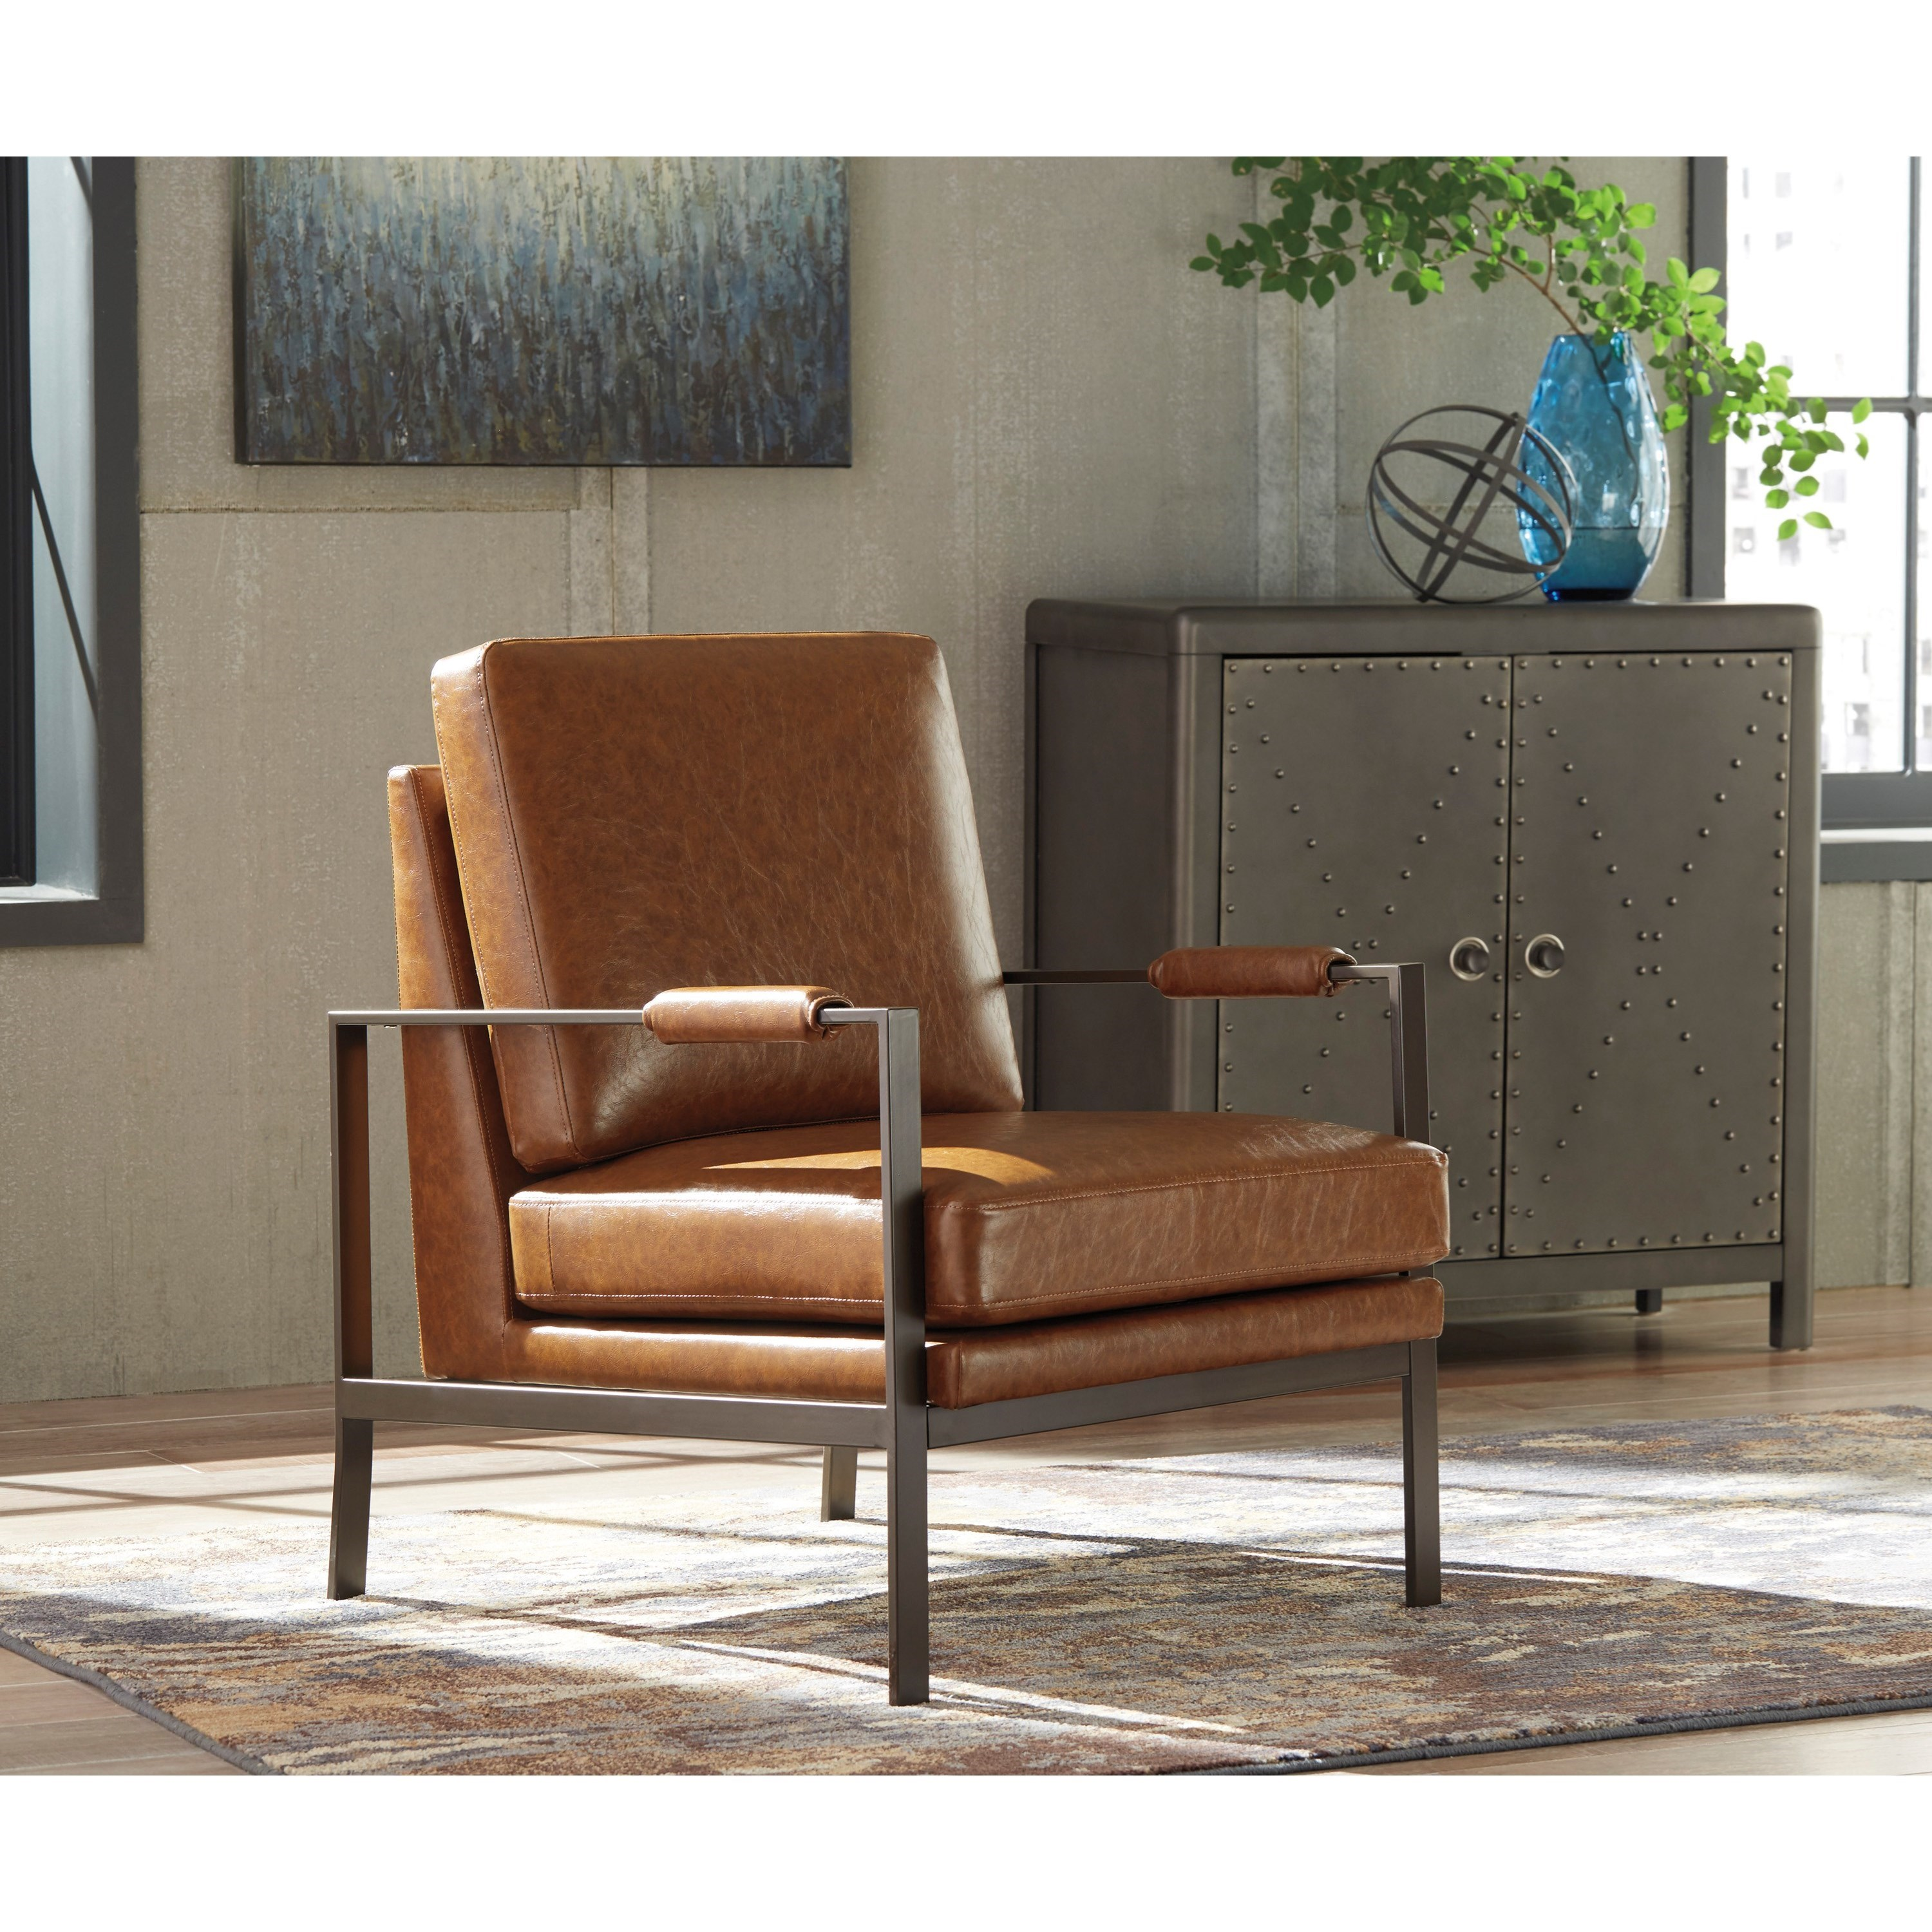 Leather Chair With Metal Accent On Arms: Signature Design By Ashley Peacemaker Dark Bronze Finish